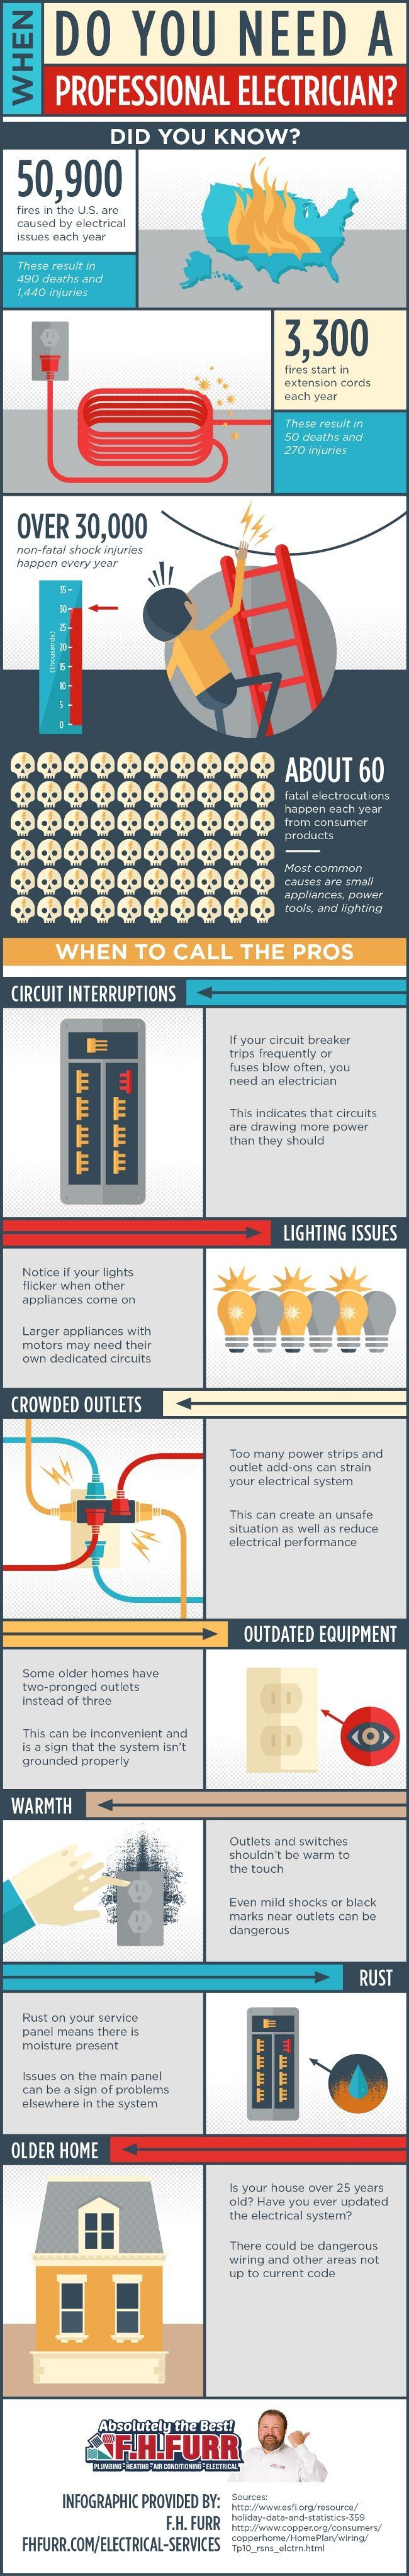 When Do You Need A Professional Electrician?